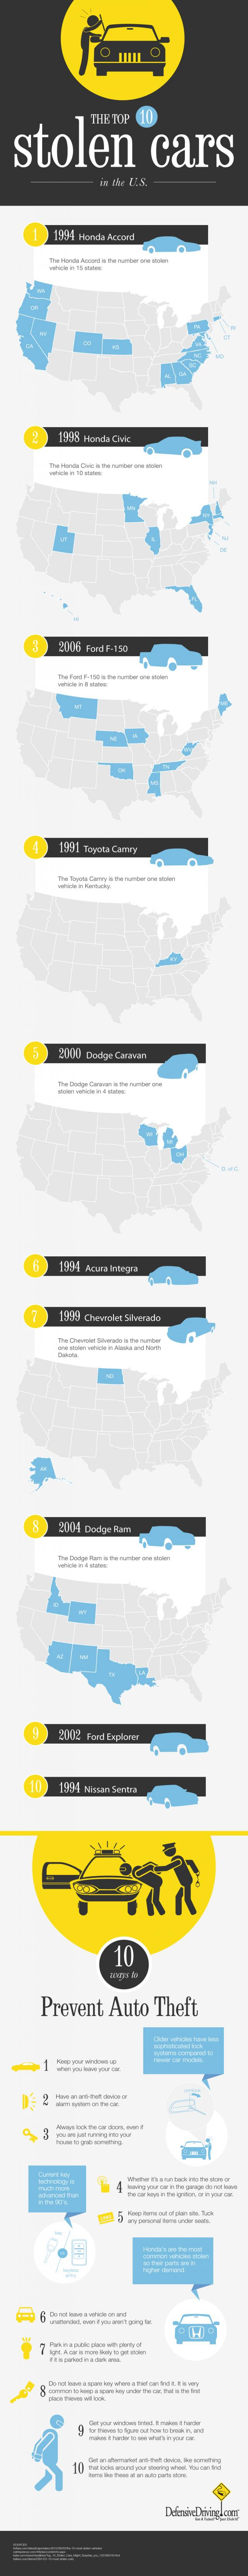 20. The top 10 stolen cars in the US